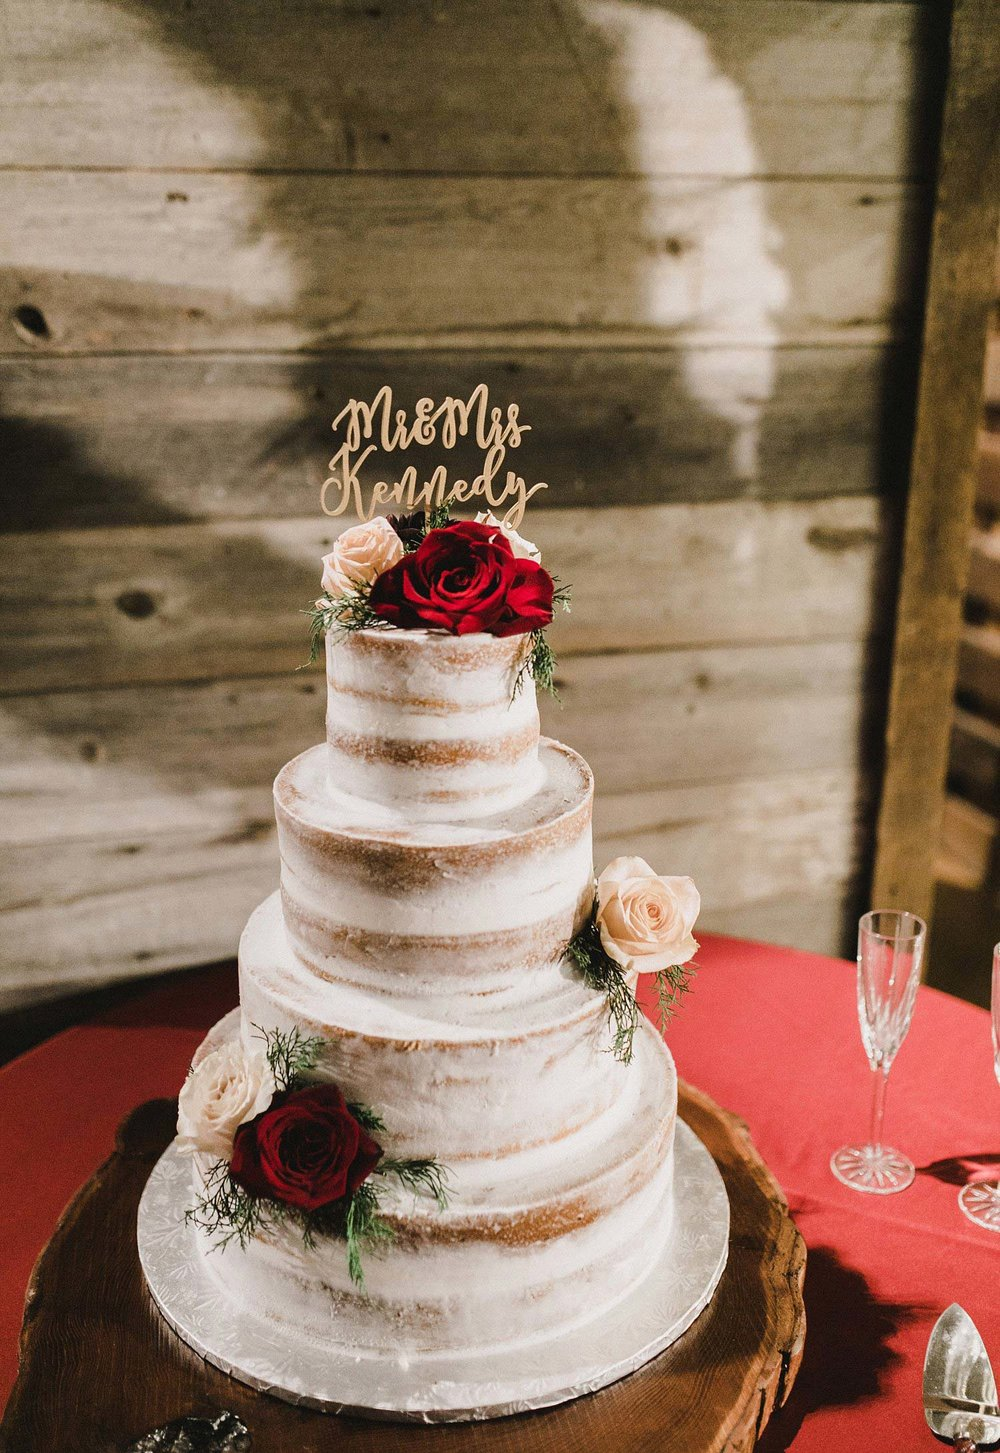 Hollow Hill Farm Event Center Wedding naked cake with Red flower in old town